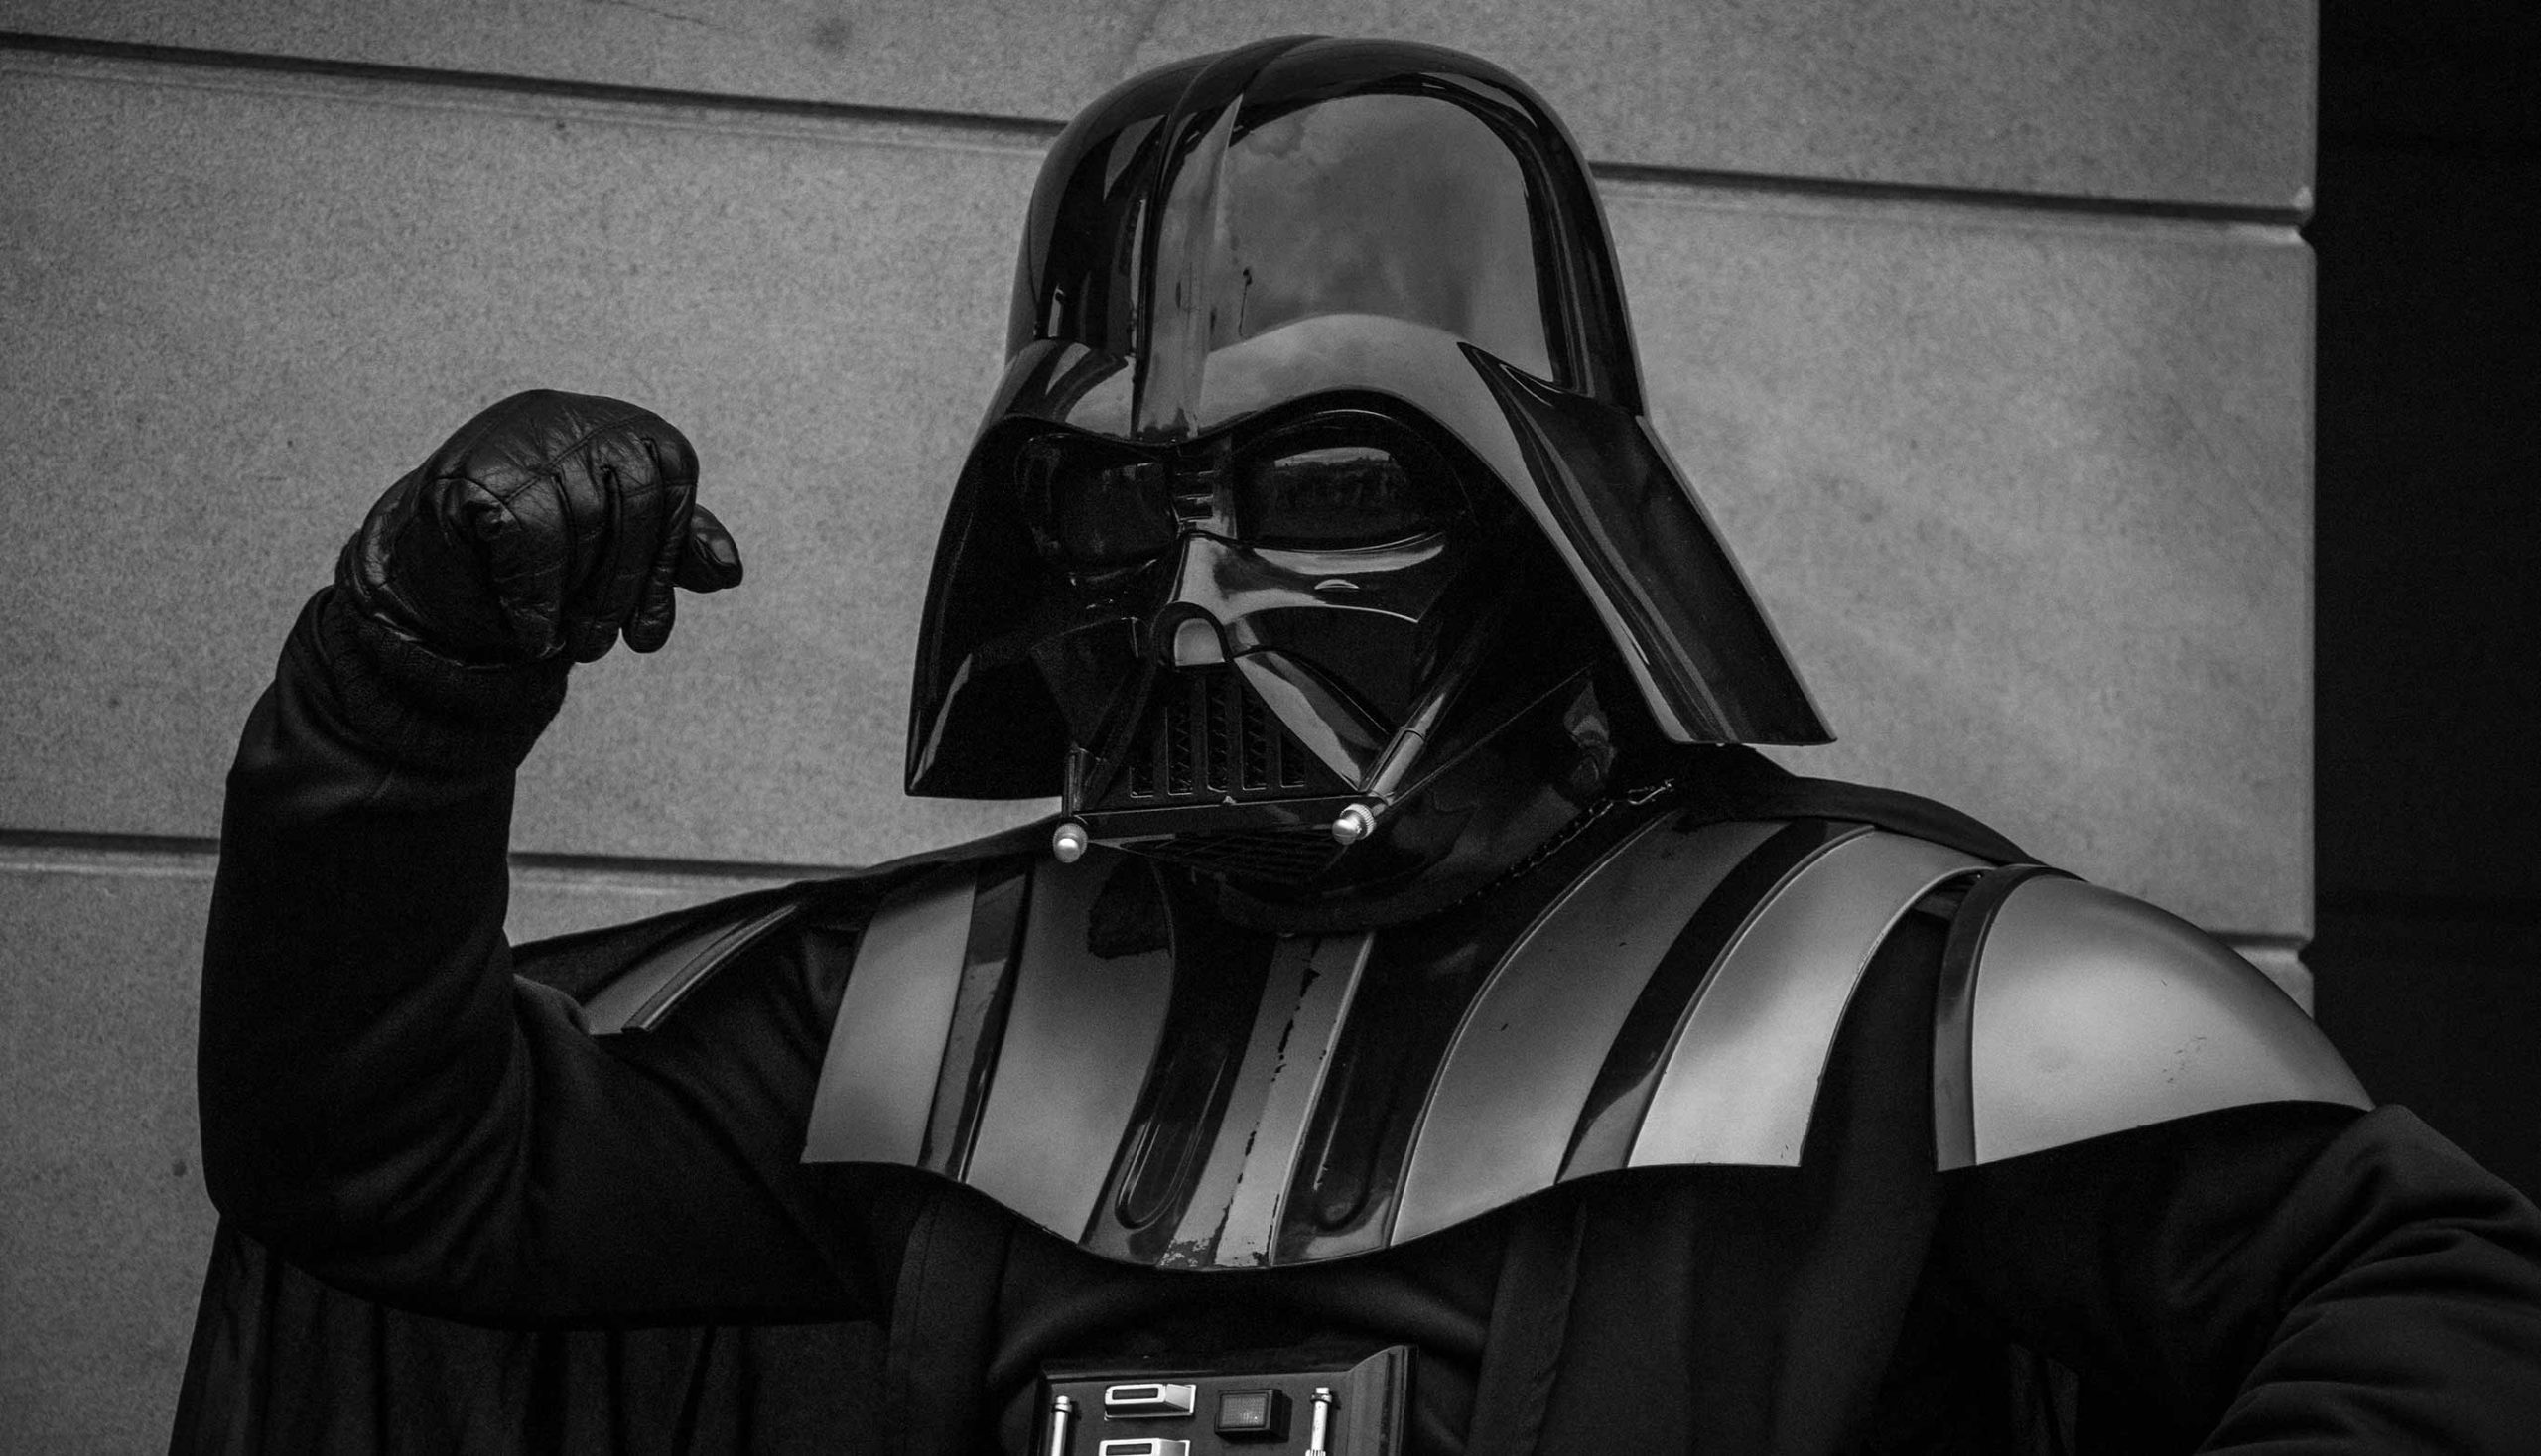 A popular movie villain, Darth Vader. Photo: Tommy van Kessel / Unsplash